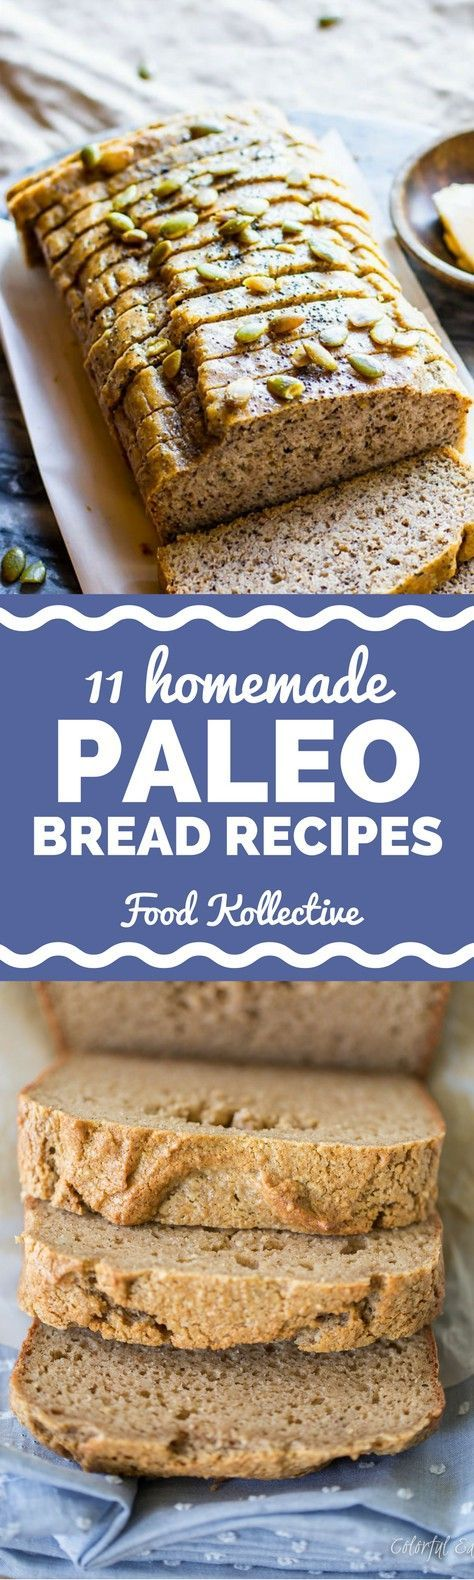 I'm always looking for new homemade Paleo bread recipes and these look super good! There are recipes for Paleo sandwich bread, Paleo french bread, and more. Ingredients include almond flour, coconut flour, banana, zucchini, pumpkin, etc. So much better th paleo for beginners coconut flour